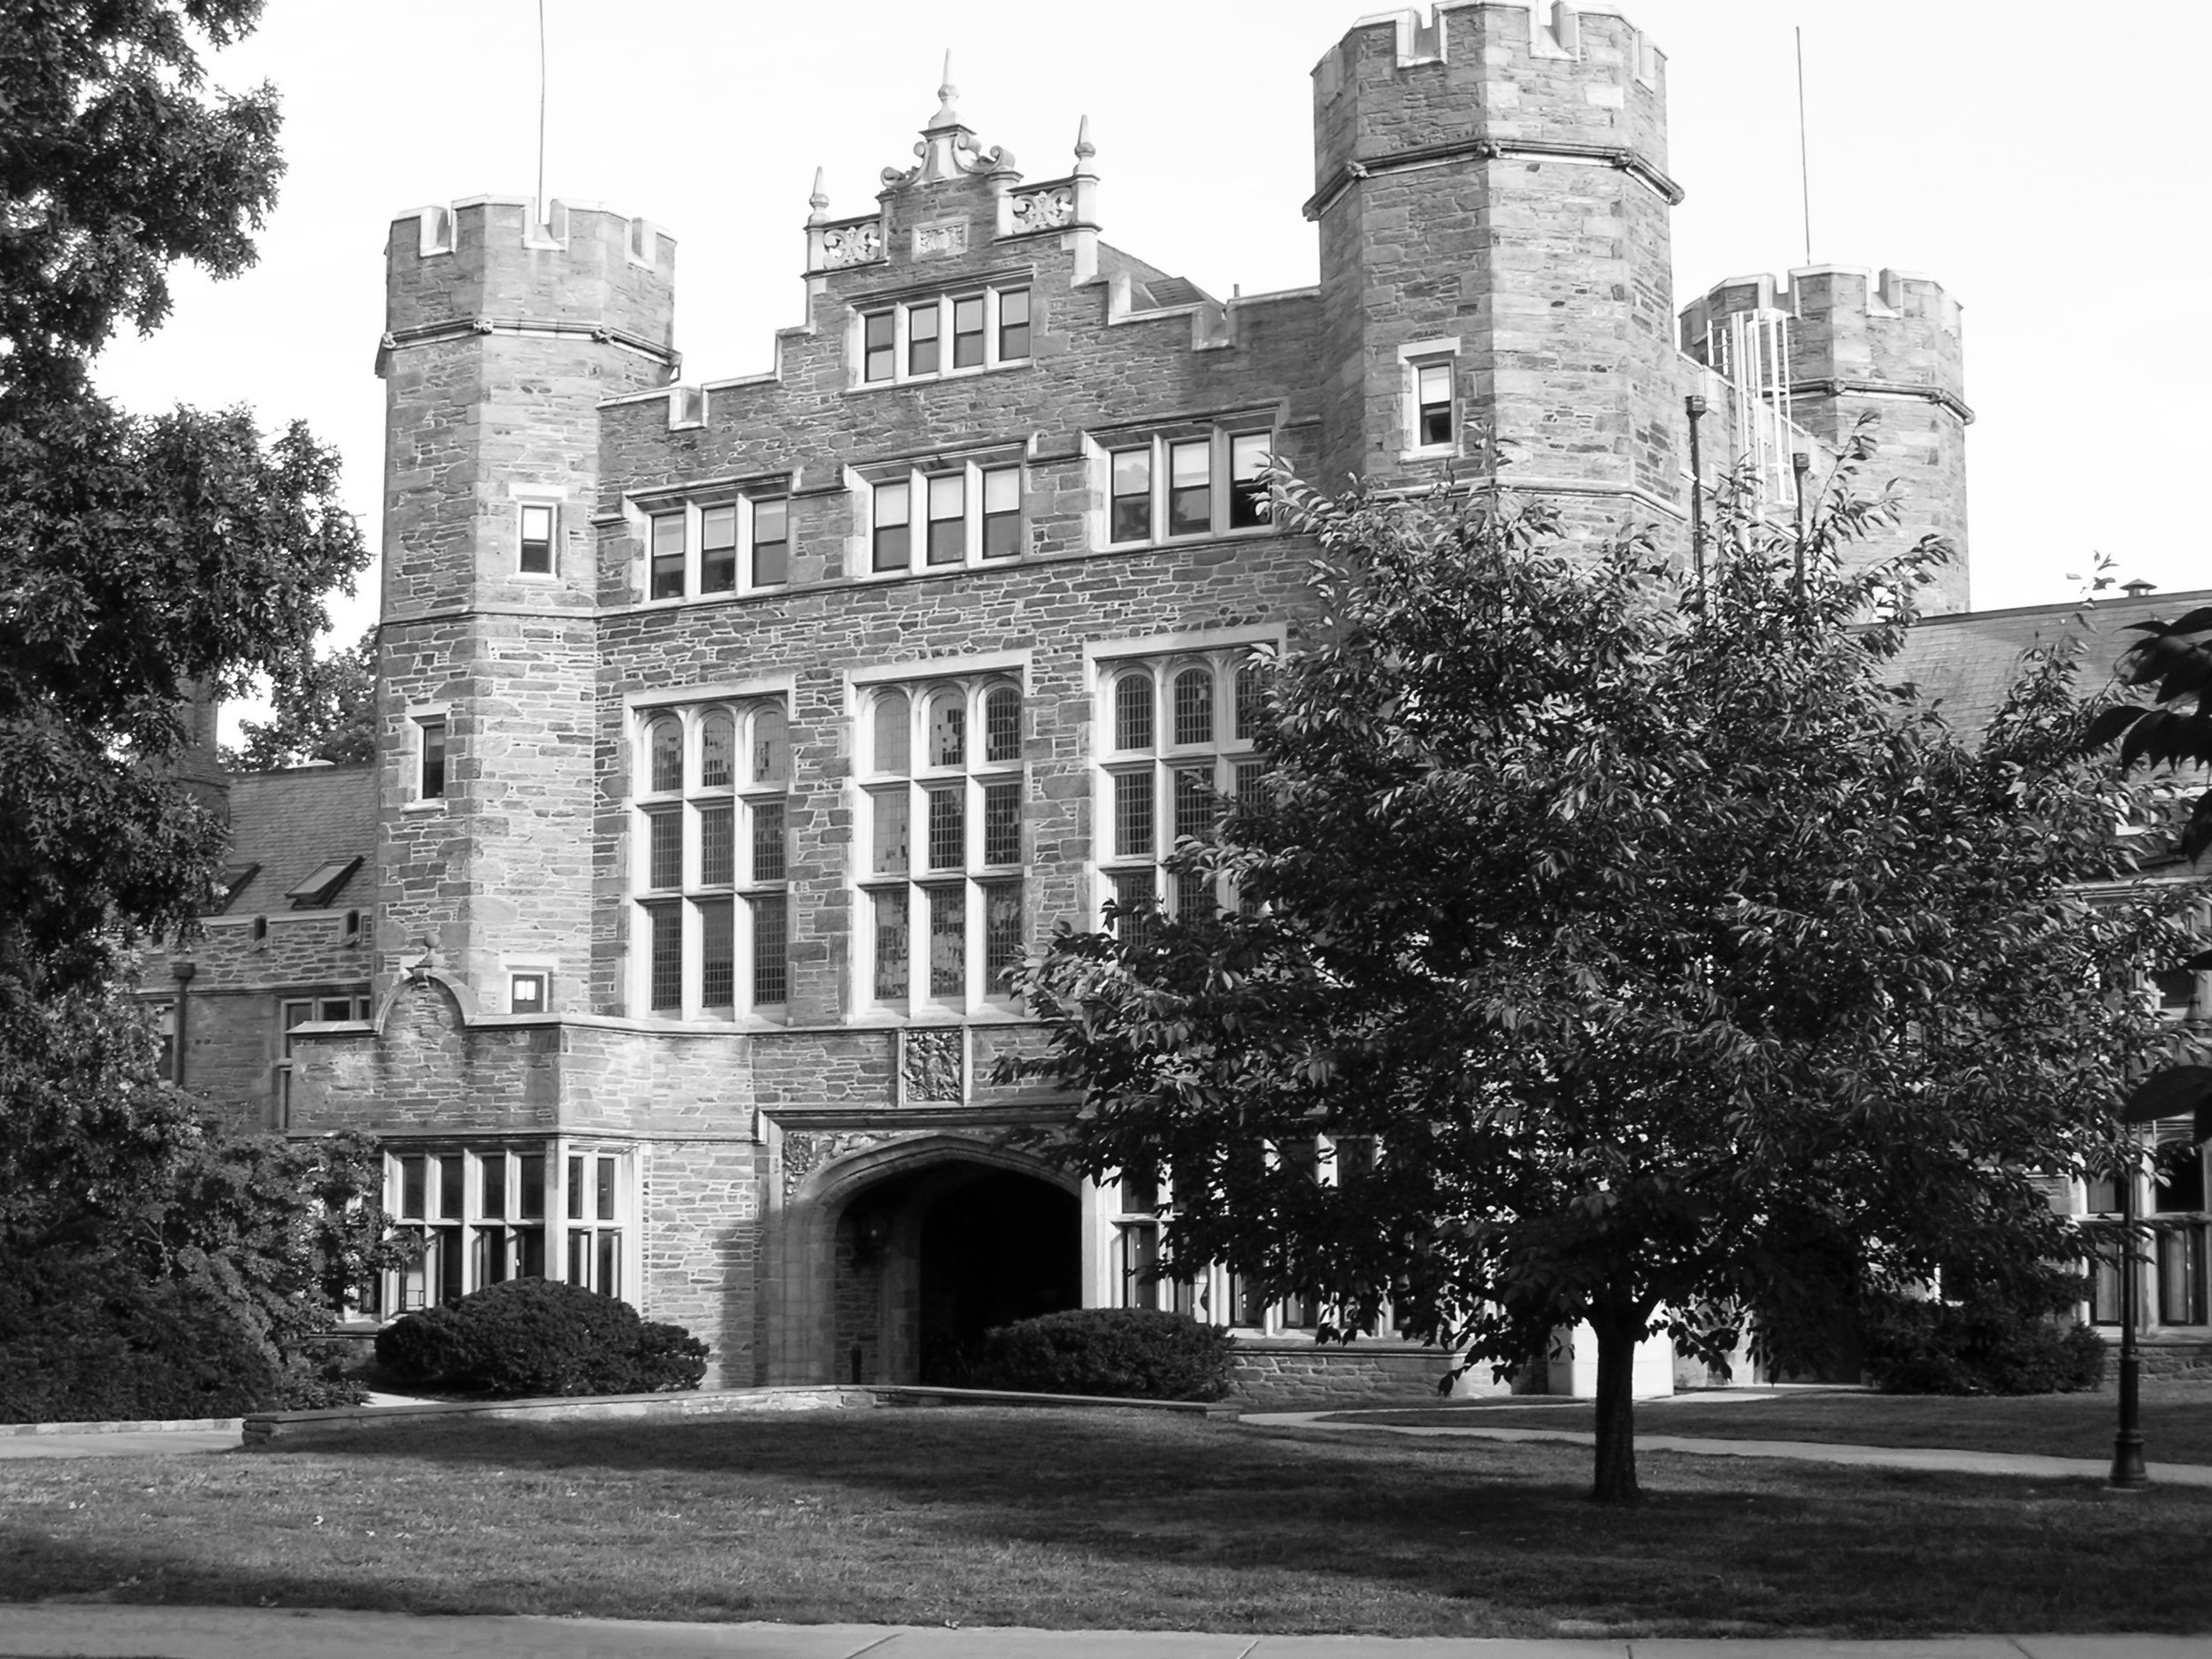 PEMBROKE ARCH AT BRYN MAWR COLLEGE (PHOTO BY JOANNA PINTO-COELHO)